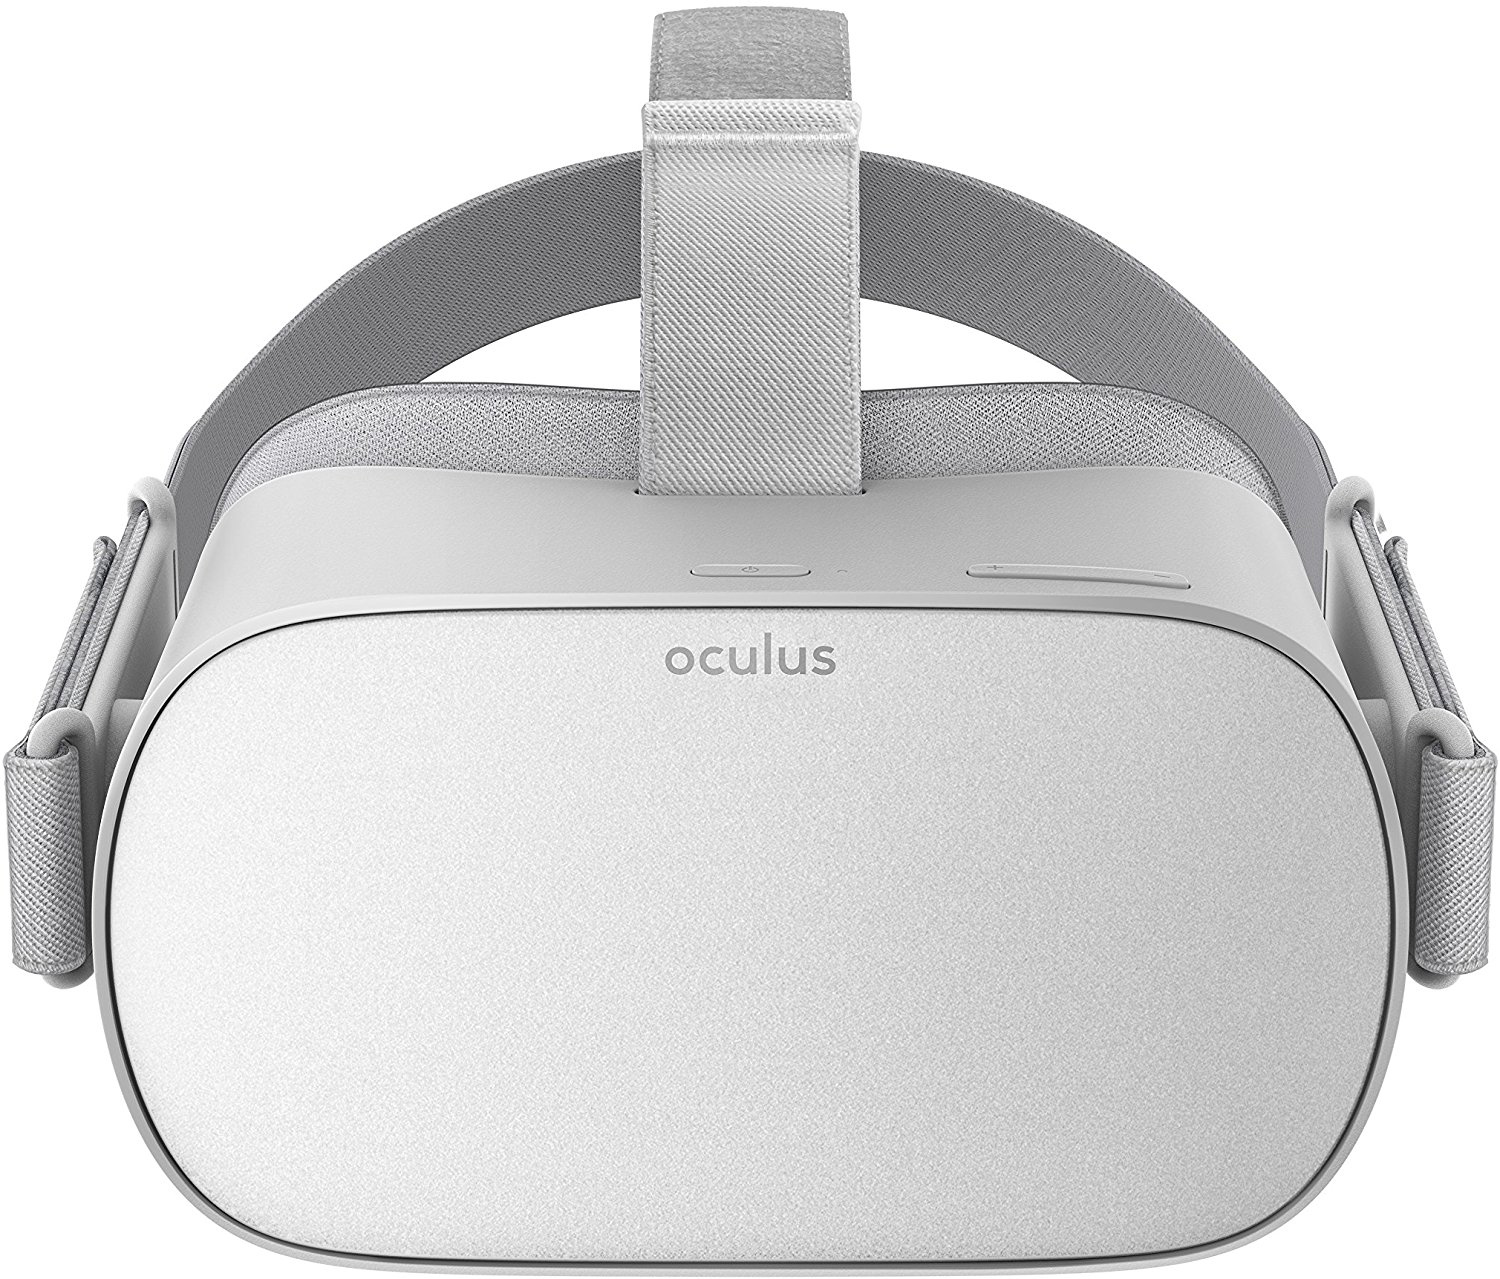 Oculus Go Now Available: Mainstream Standalone VR Headset